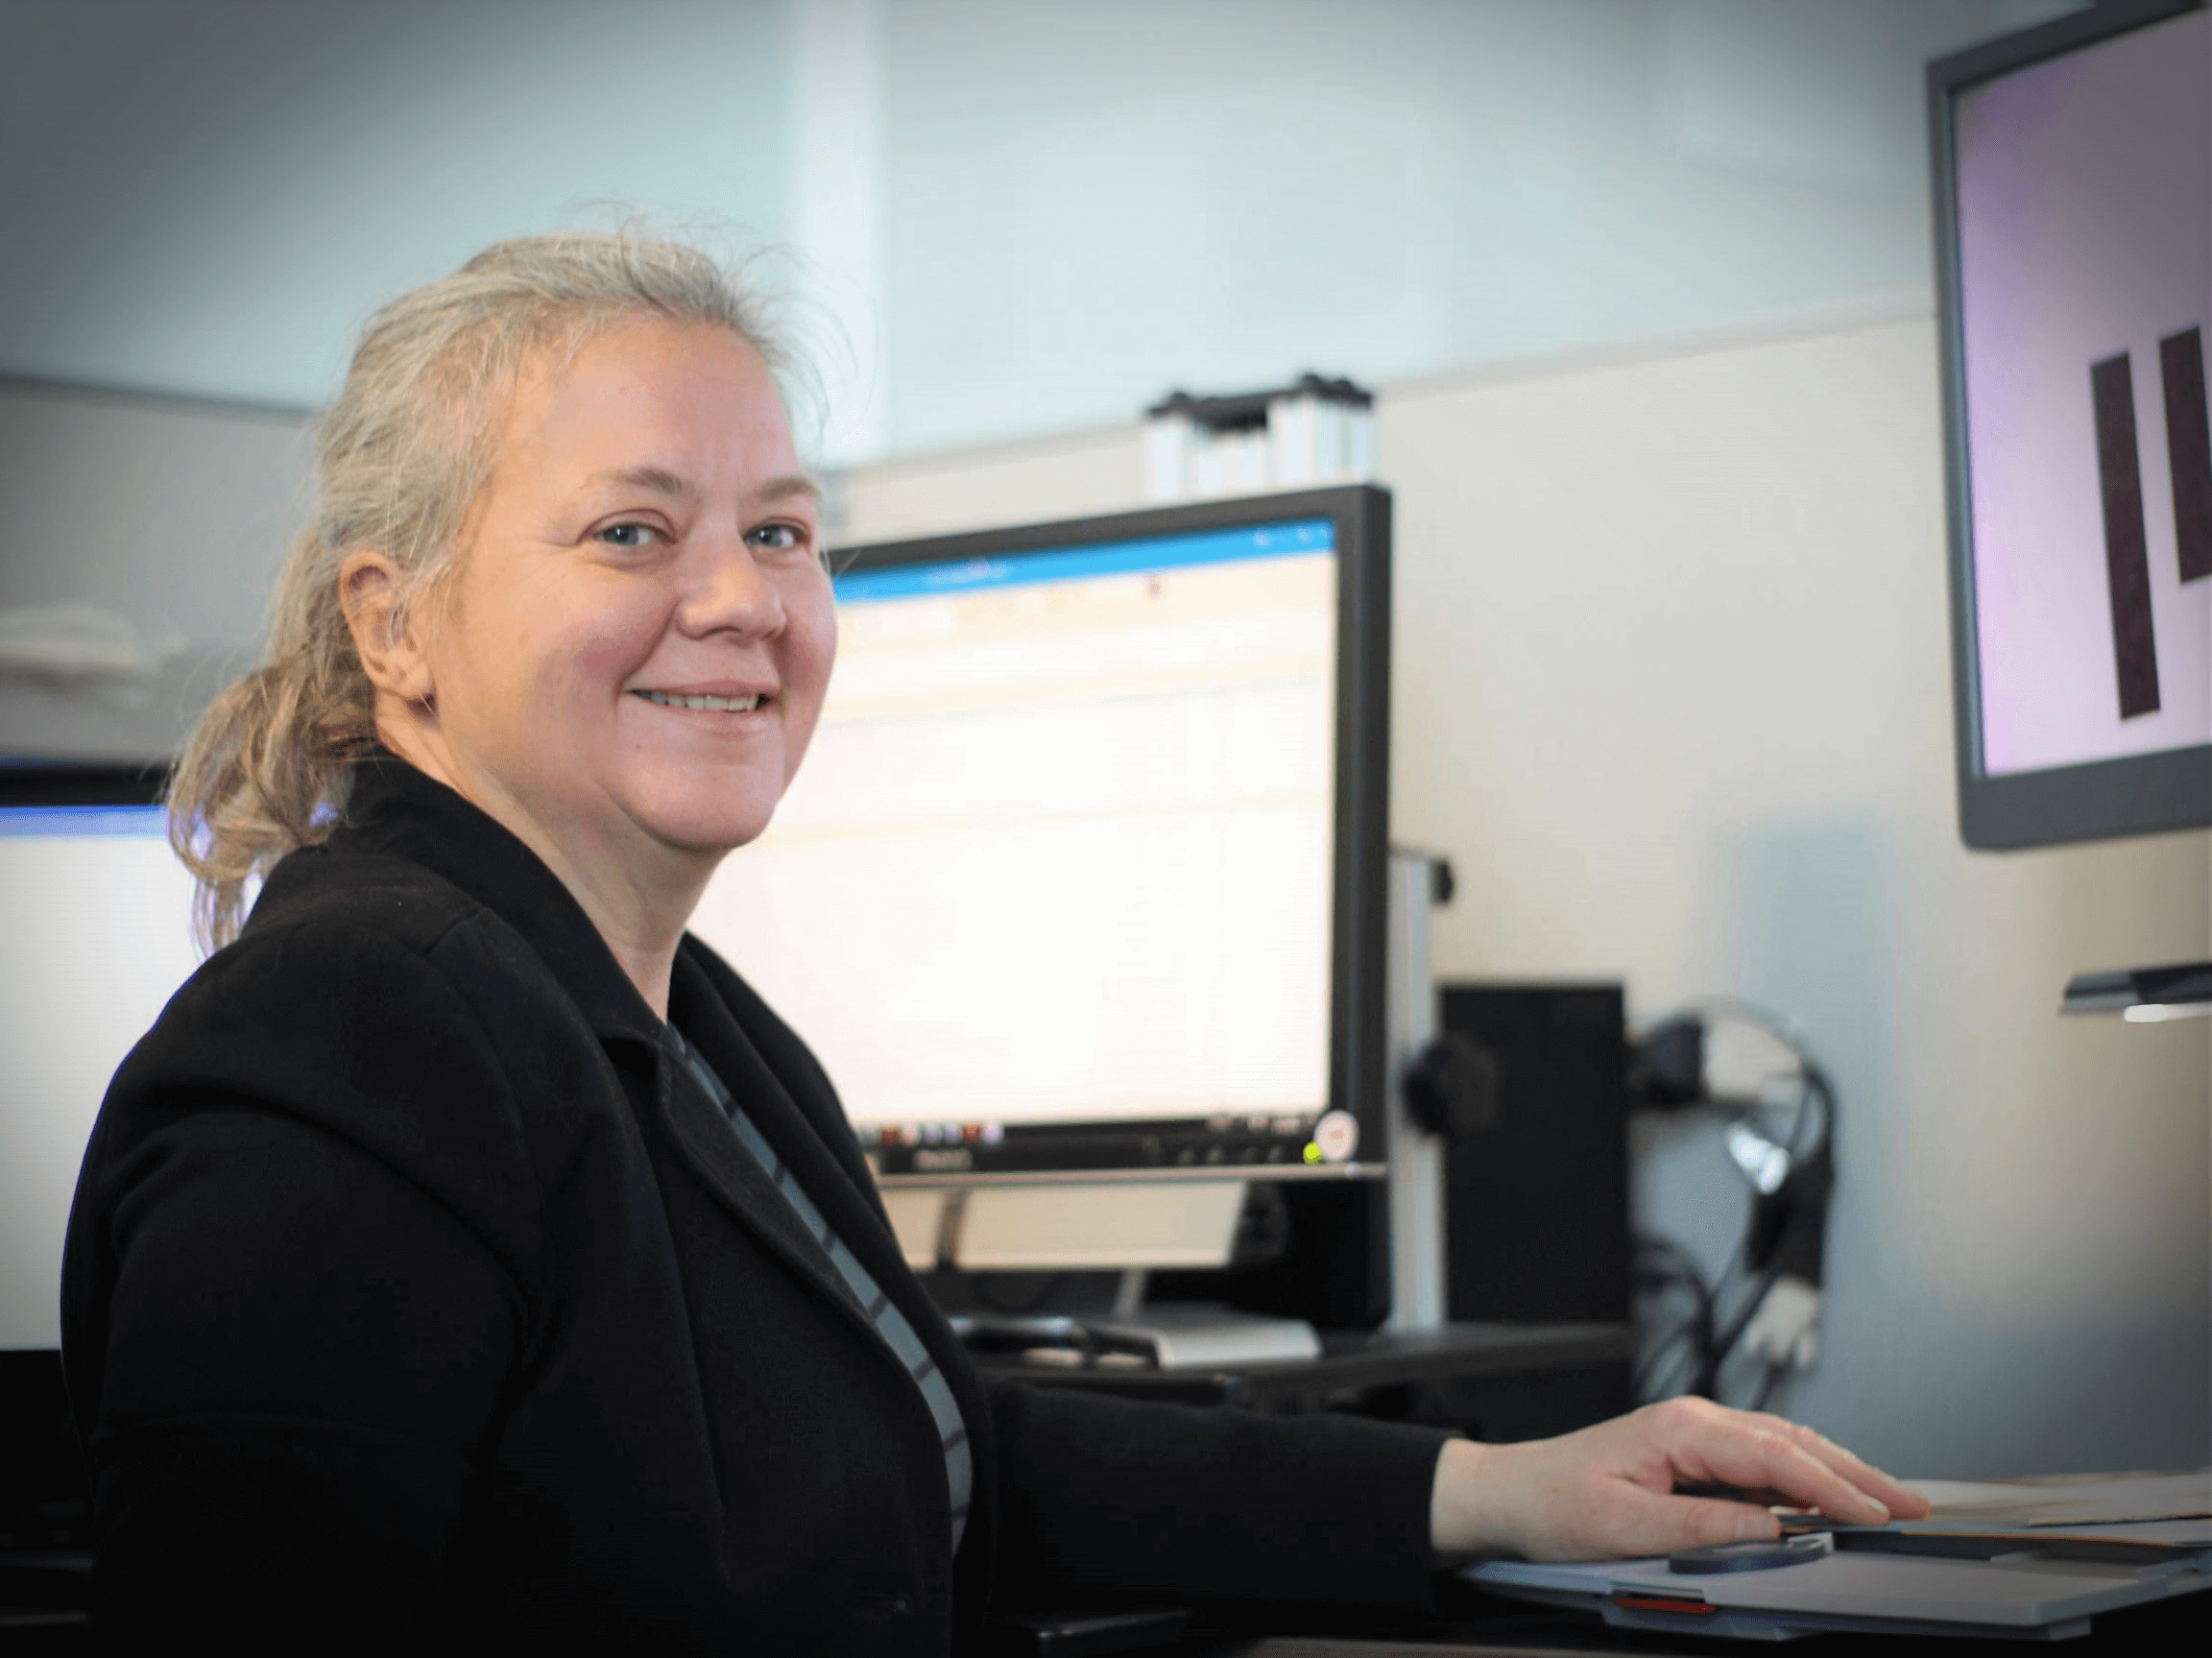 Pauline Dowell, a 2019 Carroll Society Award inductee, smiles while using a desktop video magnifier at her work station in the MIT Human Resource department.